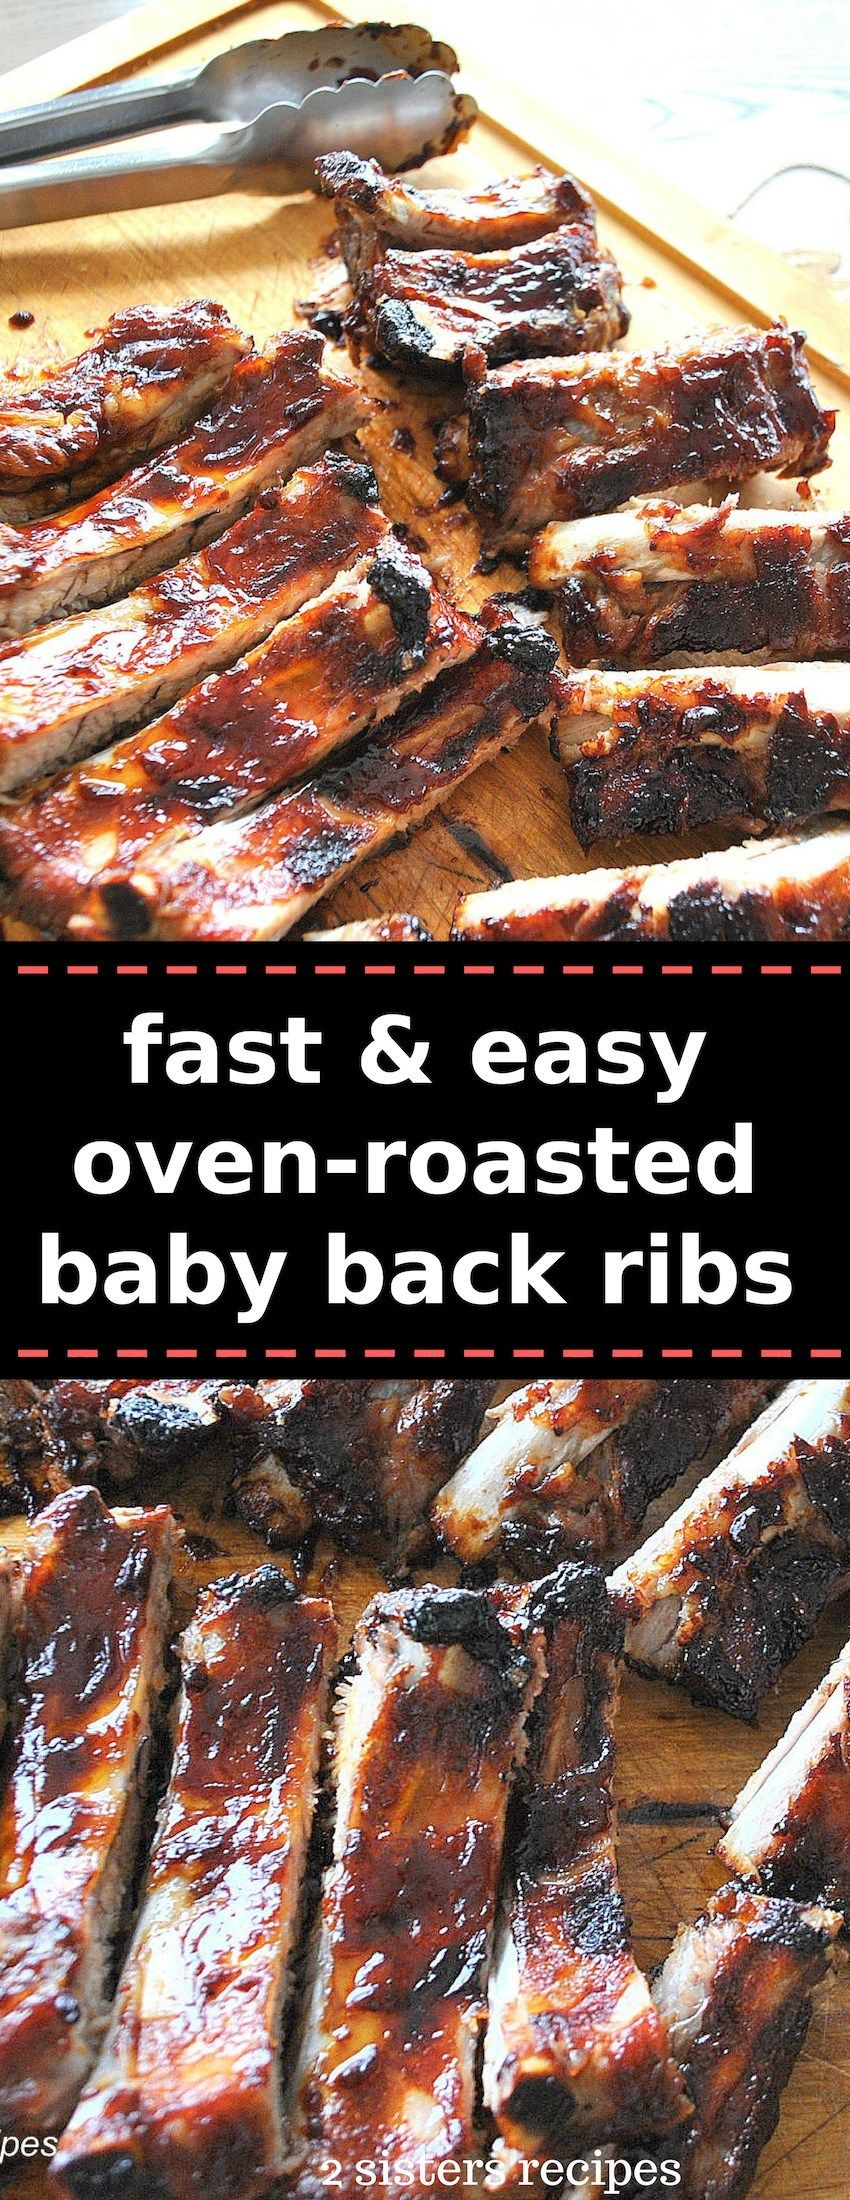 Fast & Easy Oven Roasted Baby Back Ribs #ribsinoven